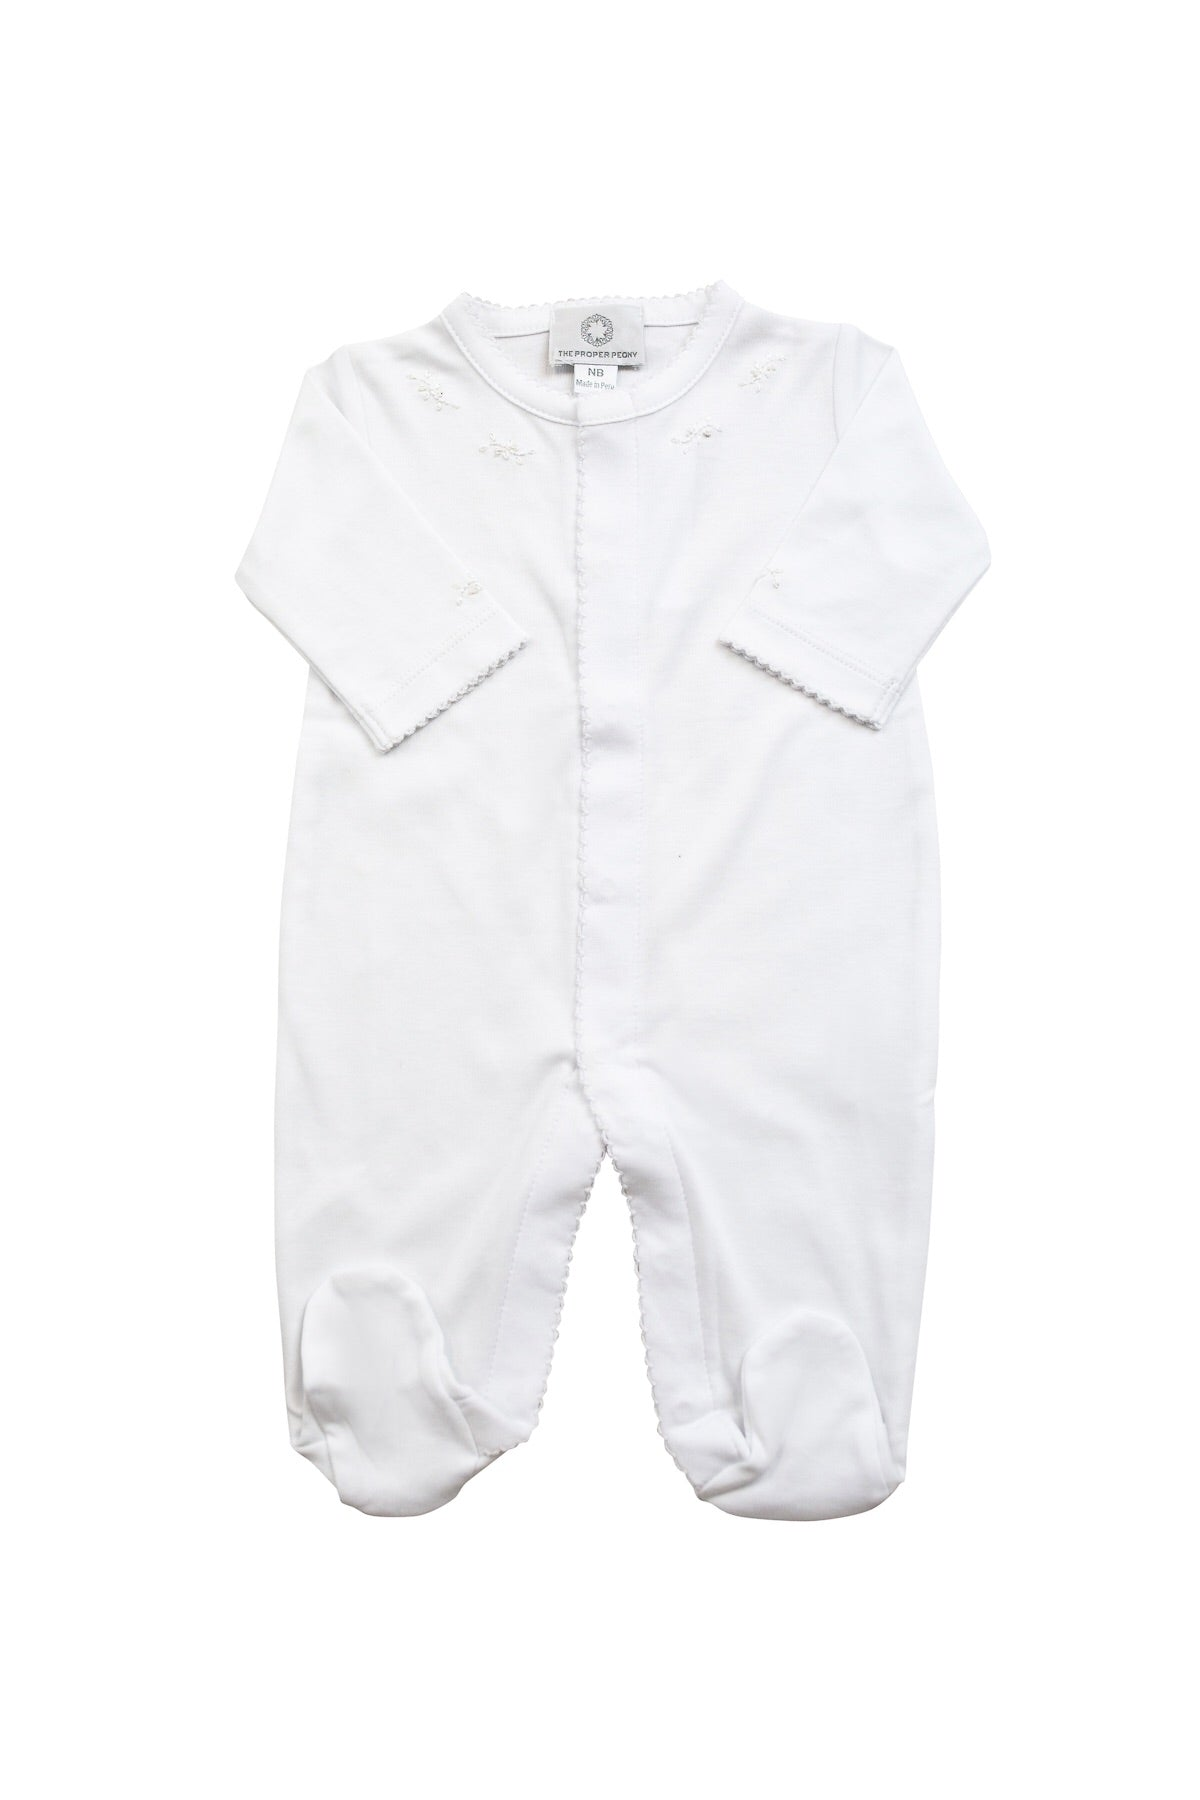 The Proper Peony Pima cotton white with white footie